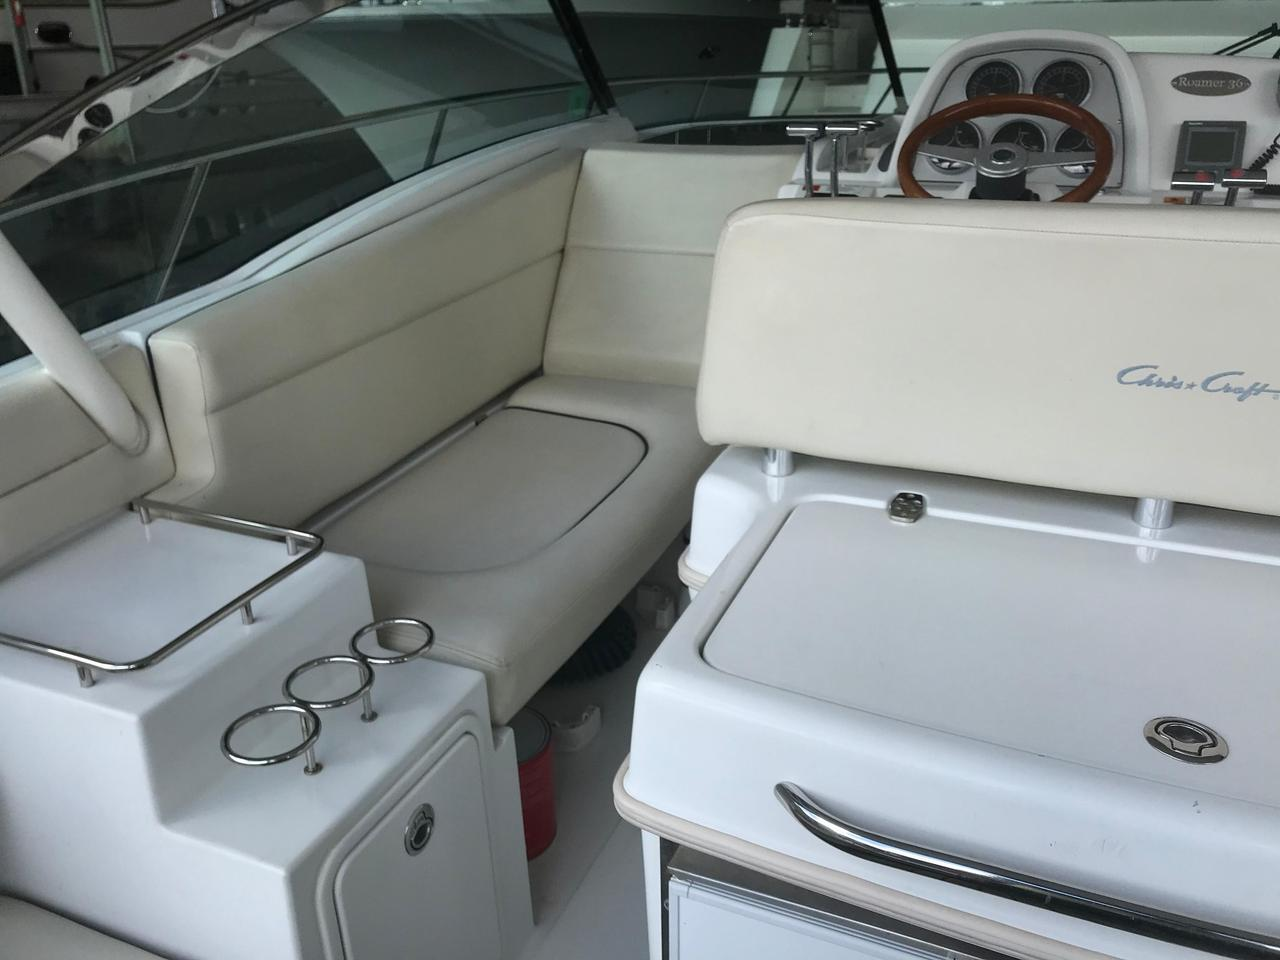 2004 Used Chris Craft Roamer 36 Express Cruiser Boat For Sale Wiring Diagram 6 Volt Generator